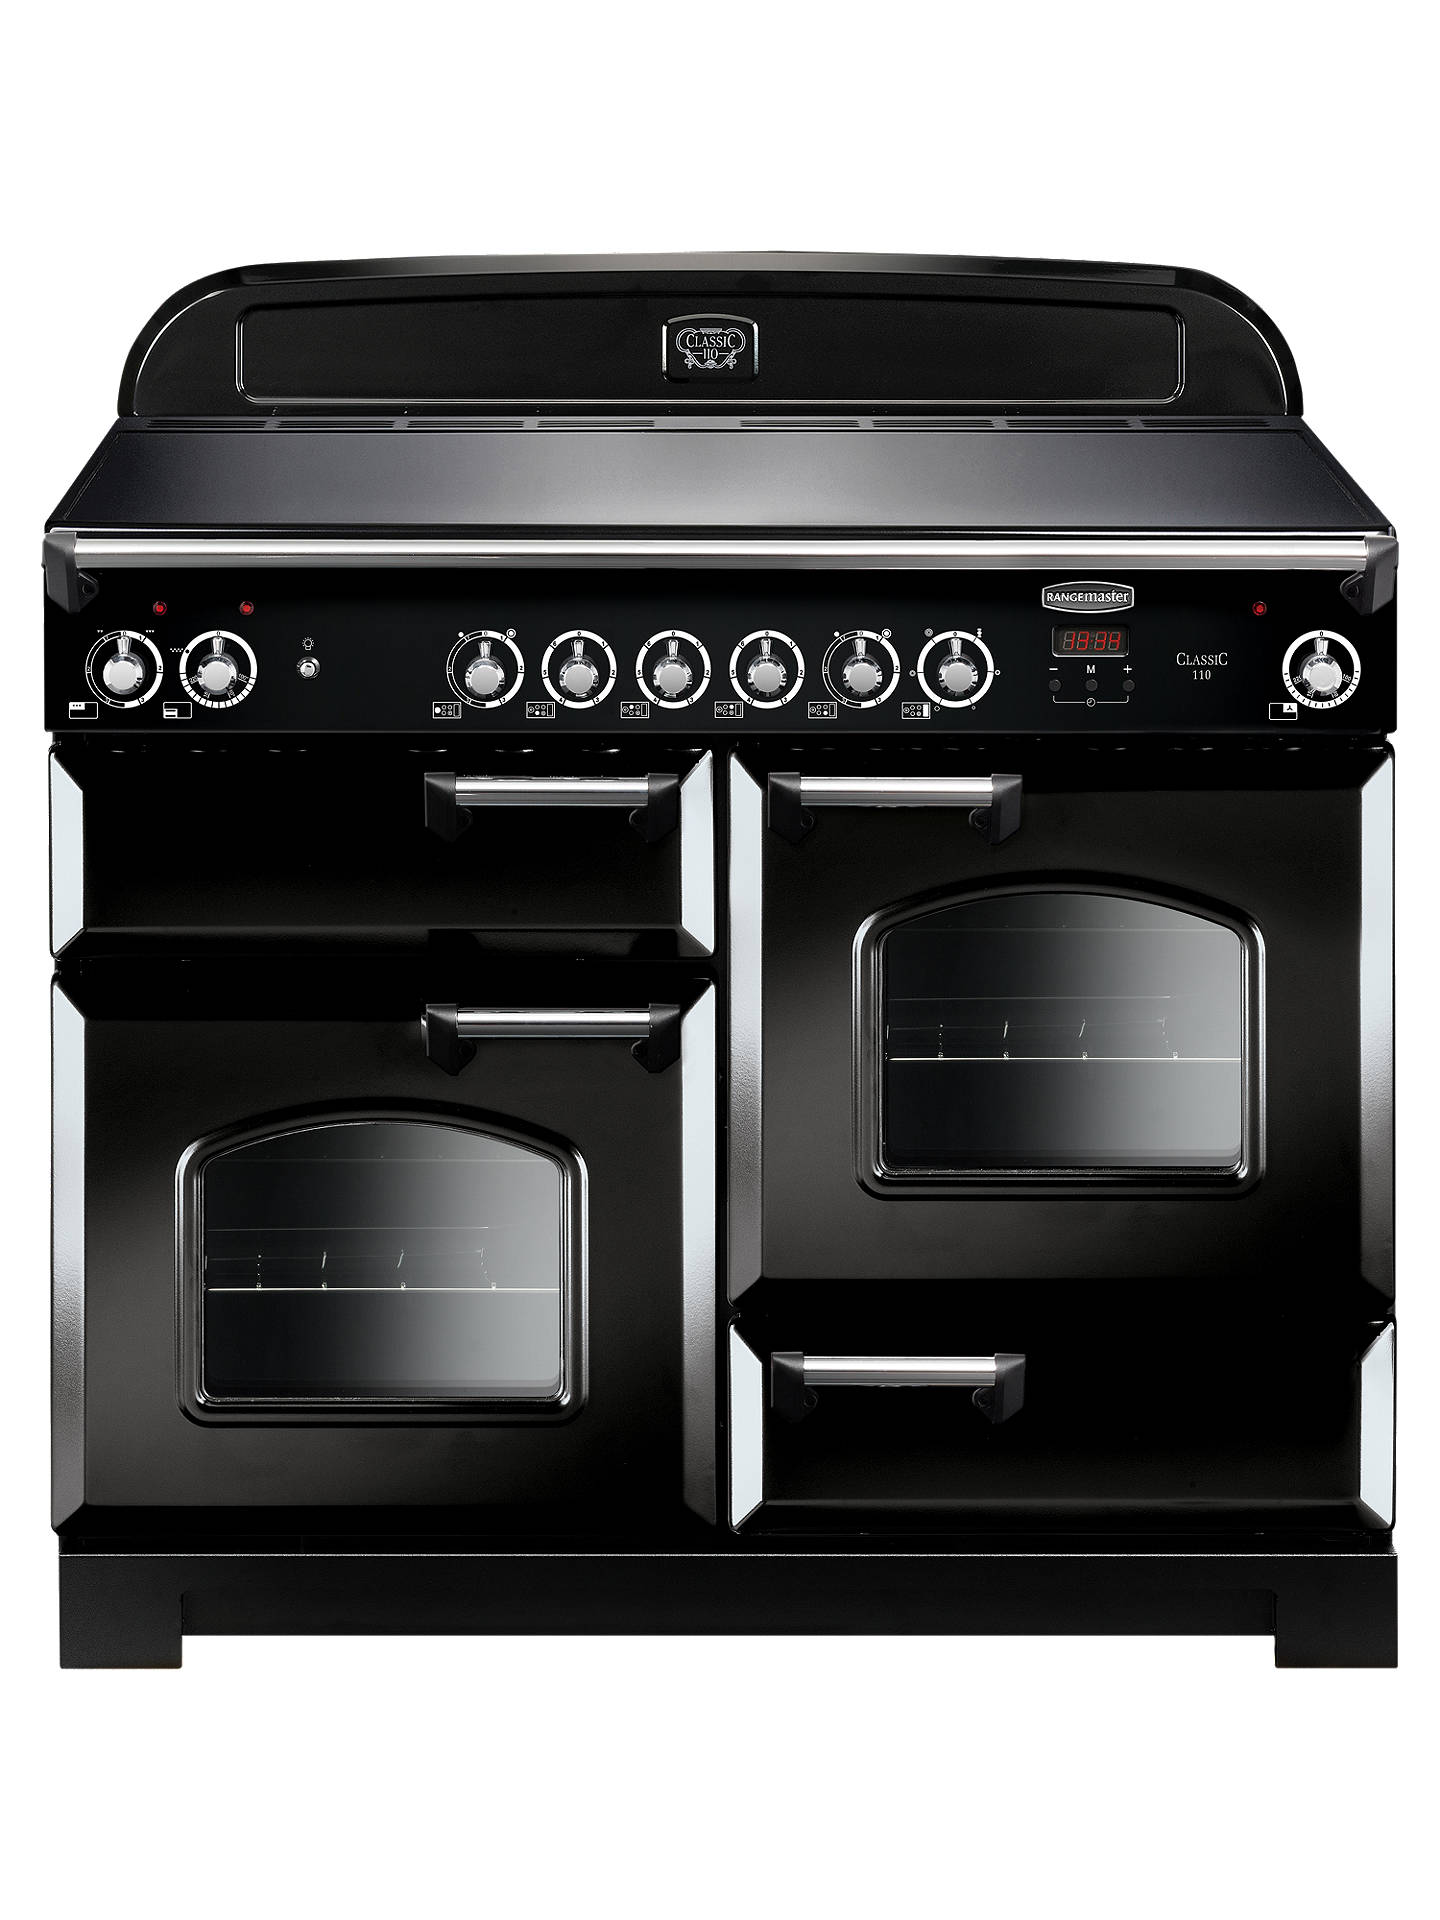 BuyRangemaster Classic 110 Electric Range Cooker, Black Online at johnlewis.com